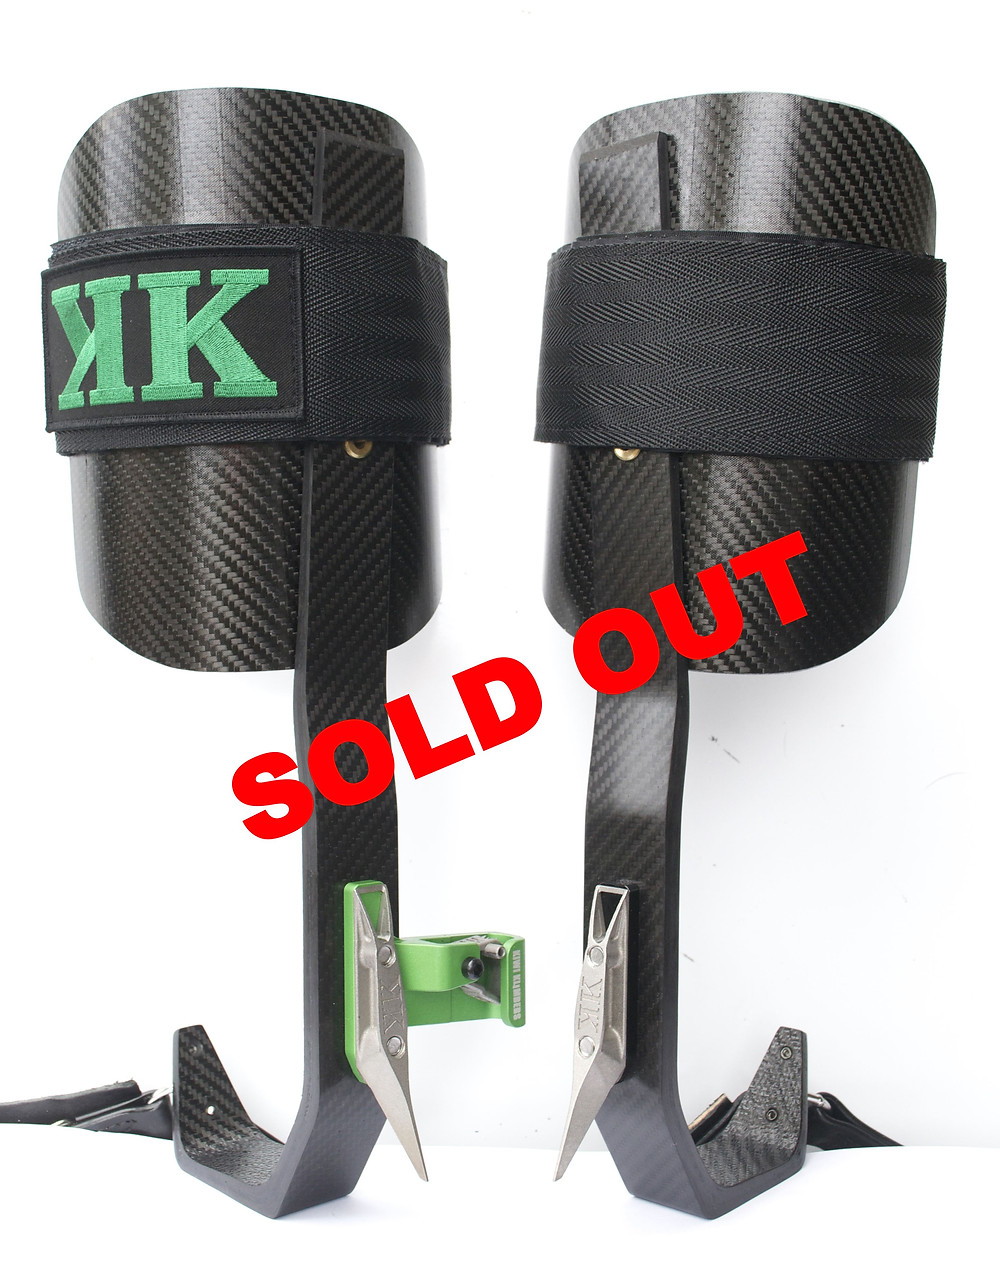 K2s on the way... Improvements? YOU BET!